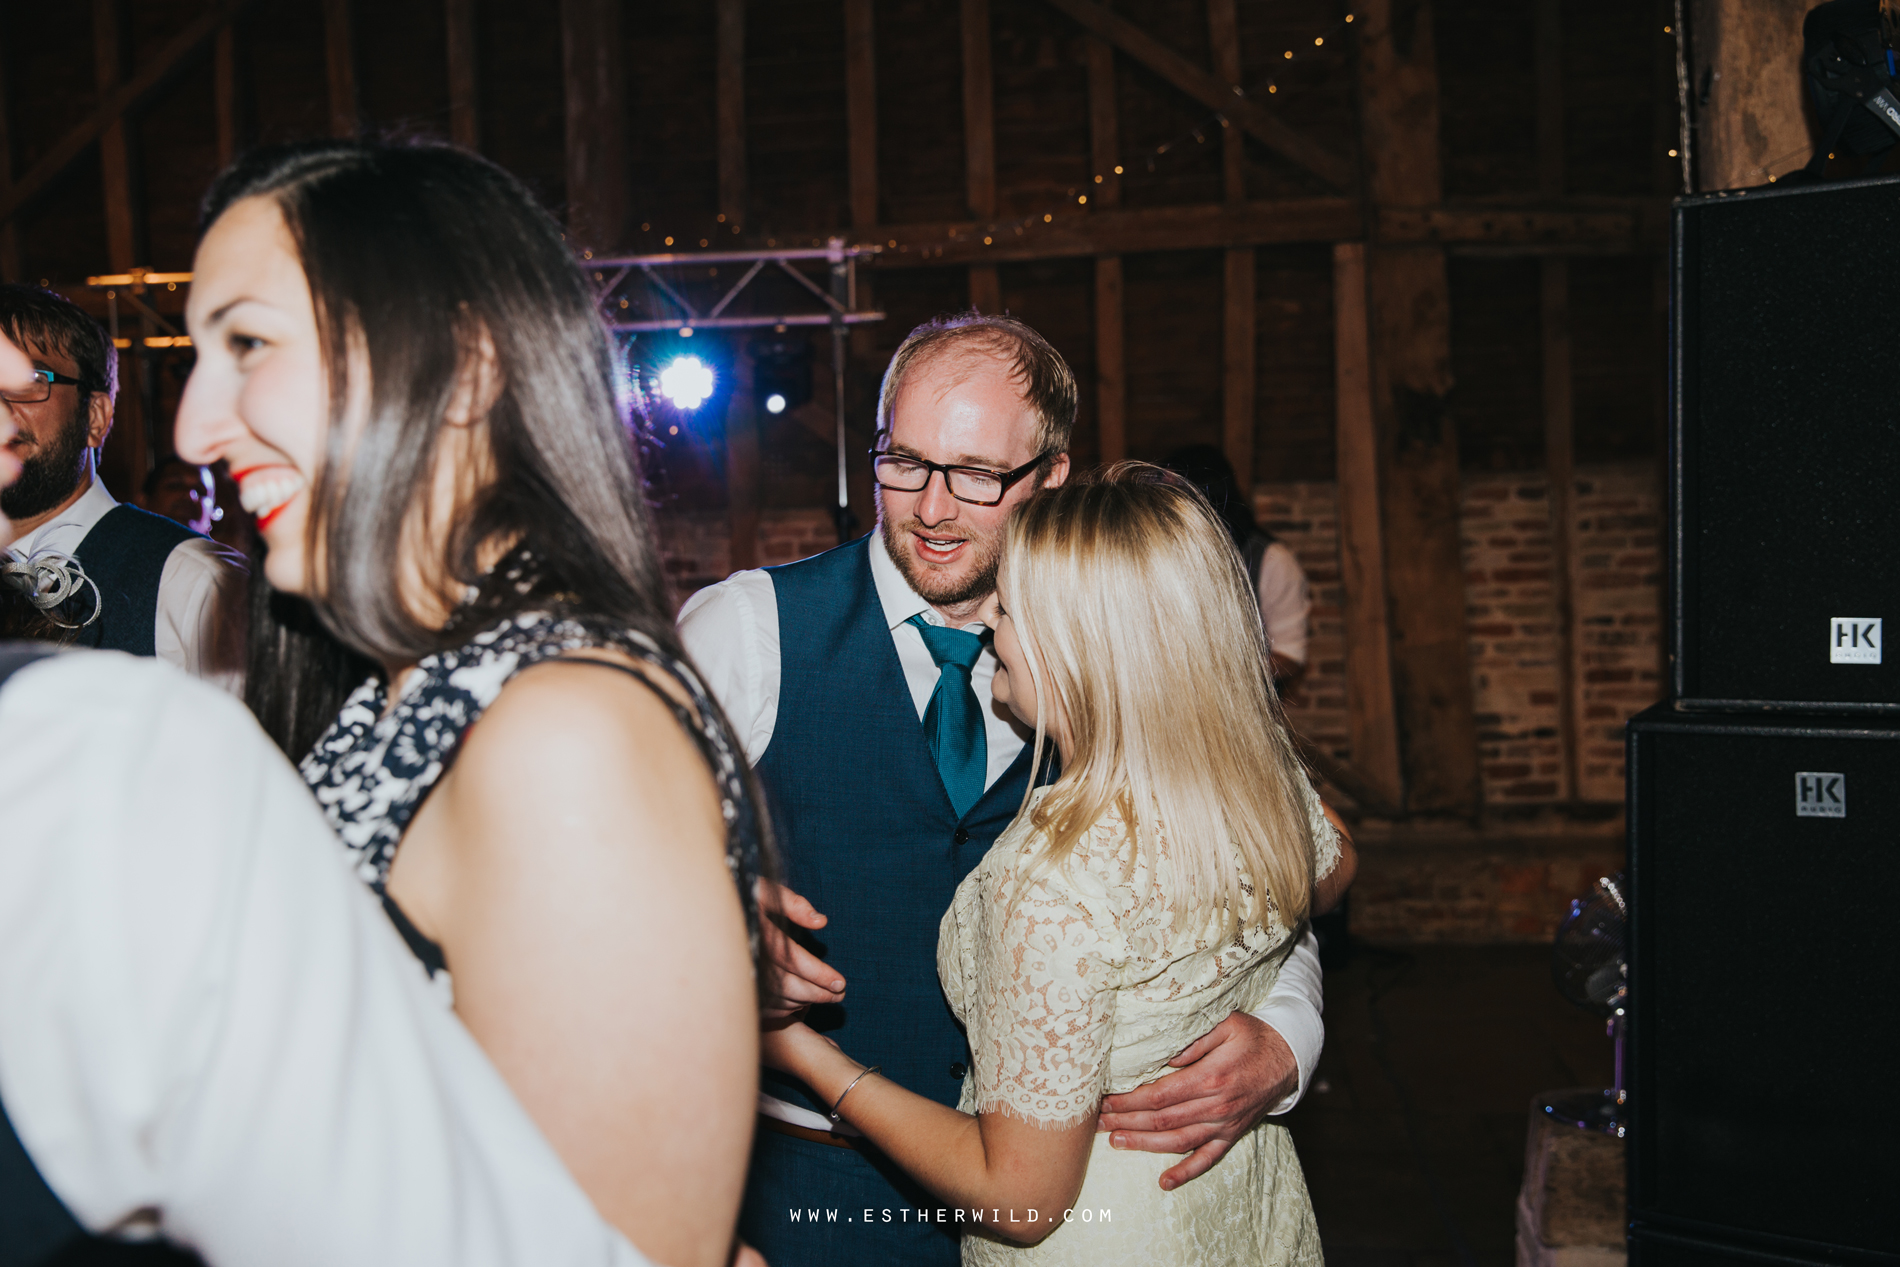 The_Red_Barn_Wedding_Kings_Lynn_Norfolk_IMG_3076.jpg